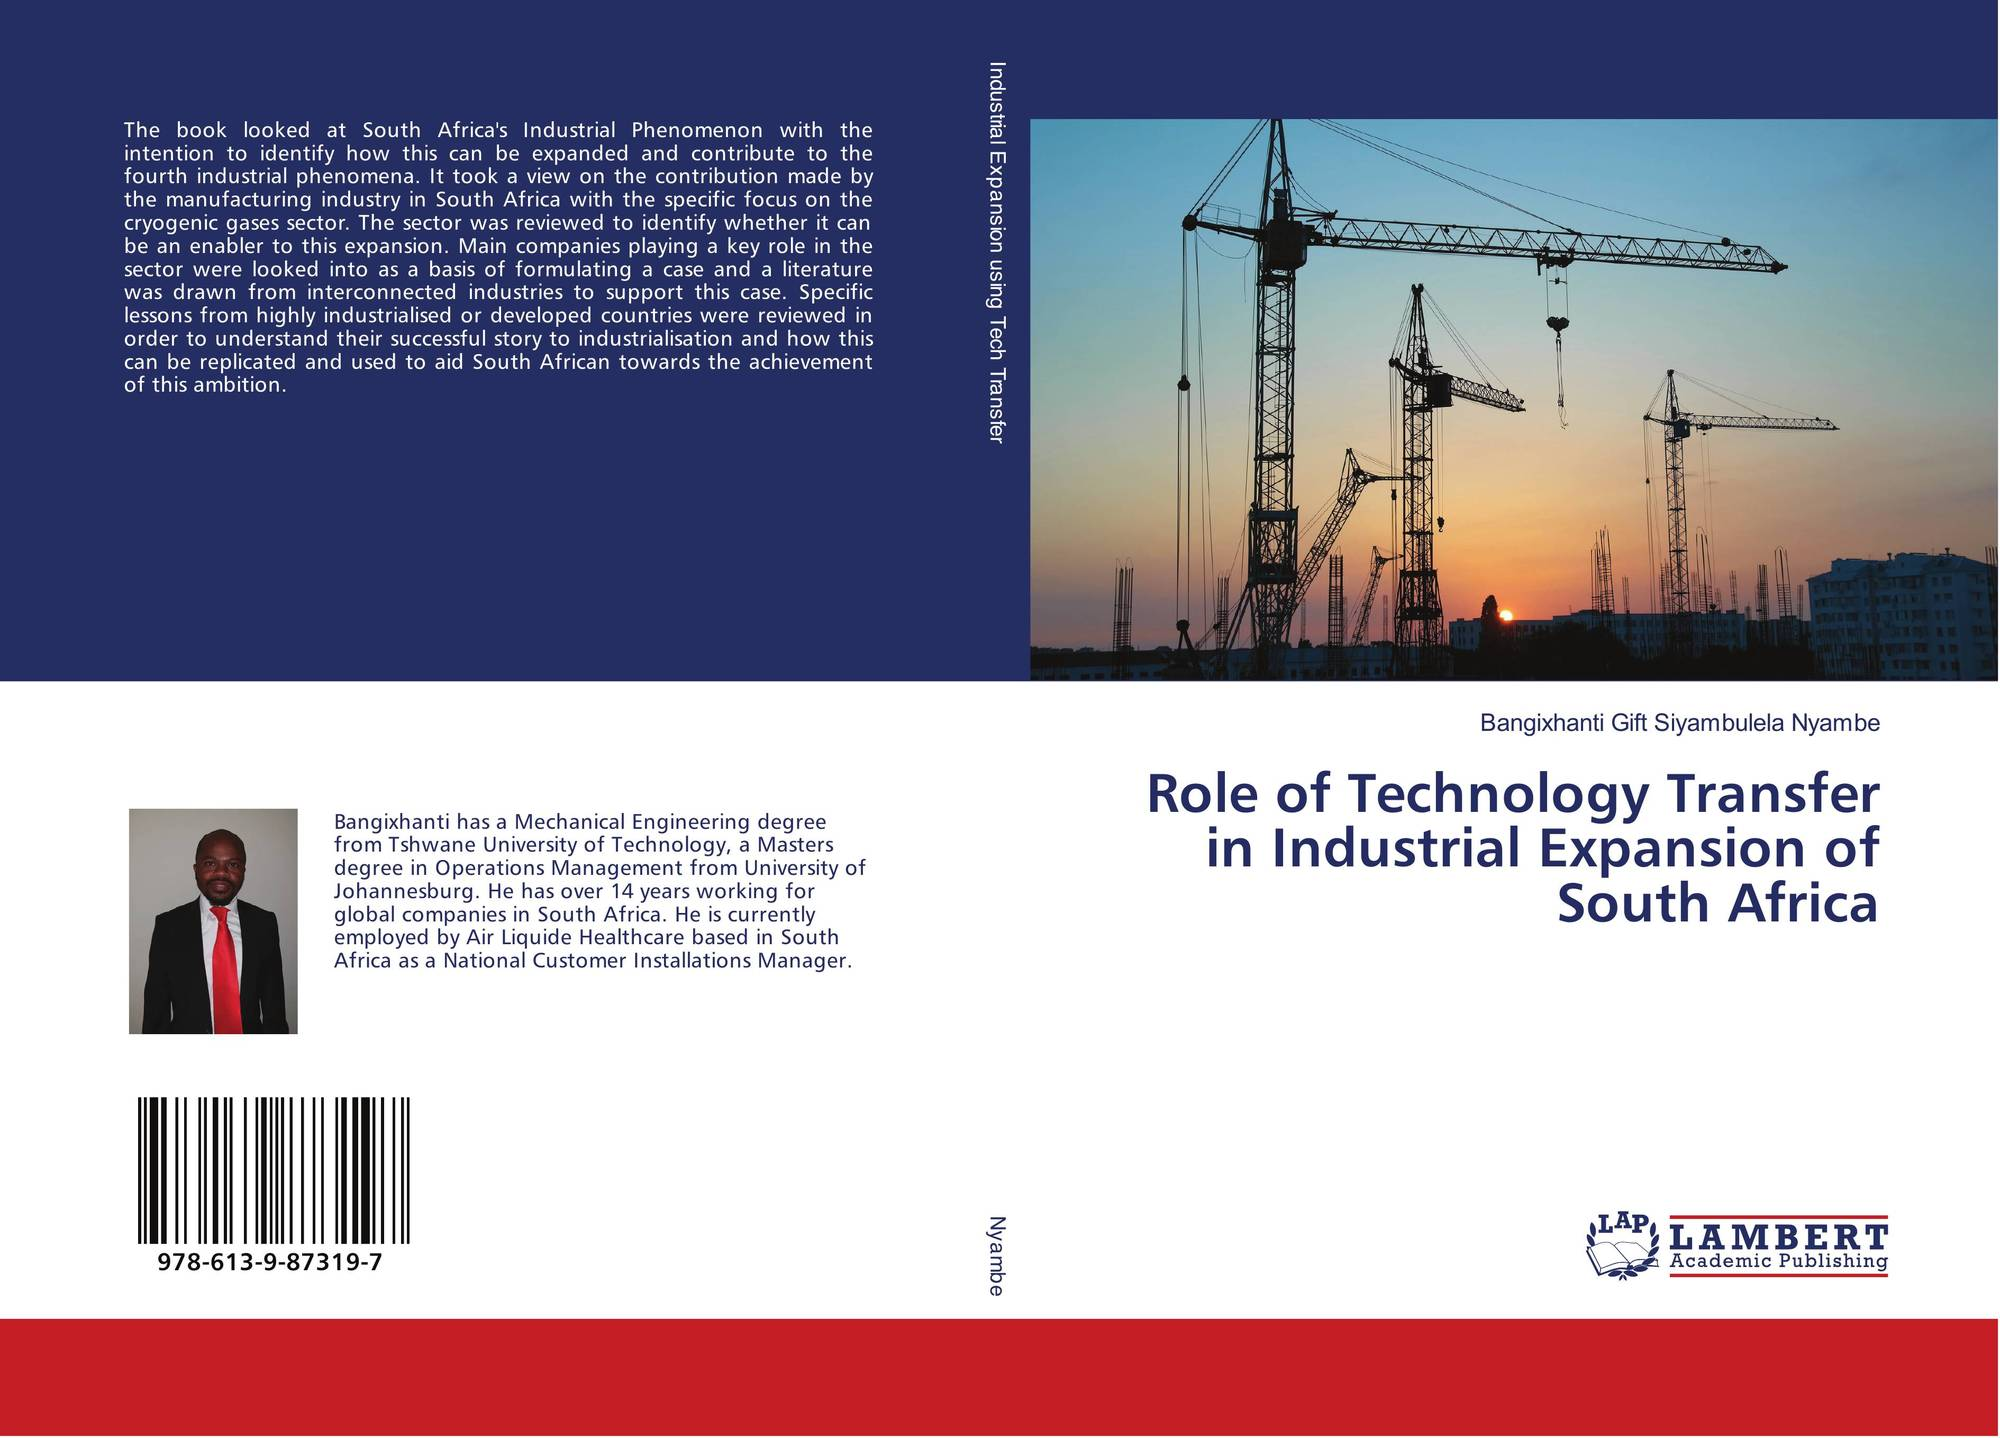 Role of Technology Transfer in Industrial Expansion of South